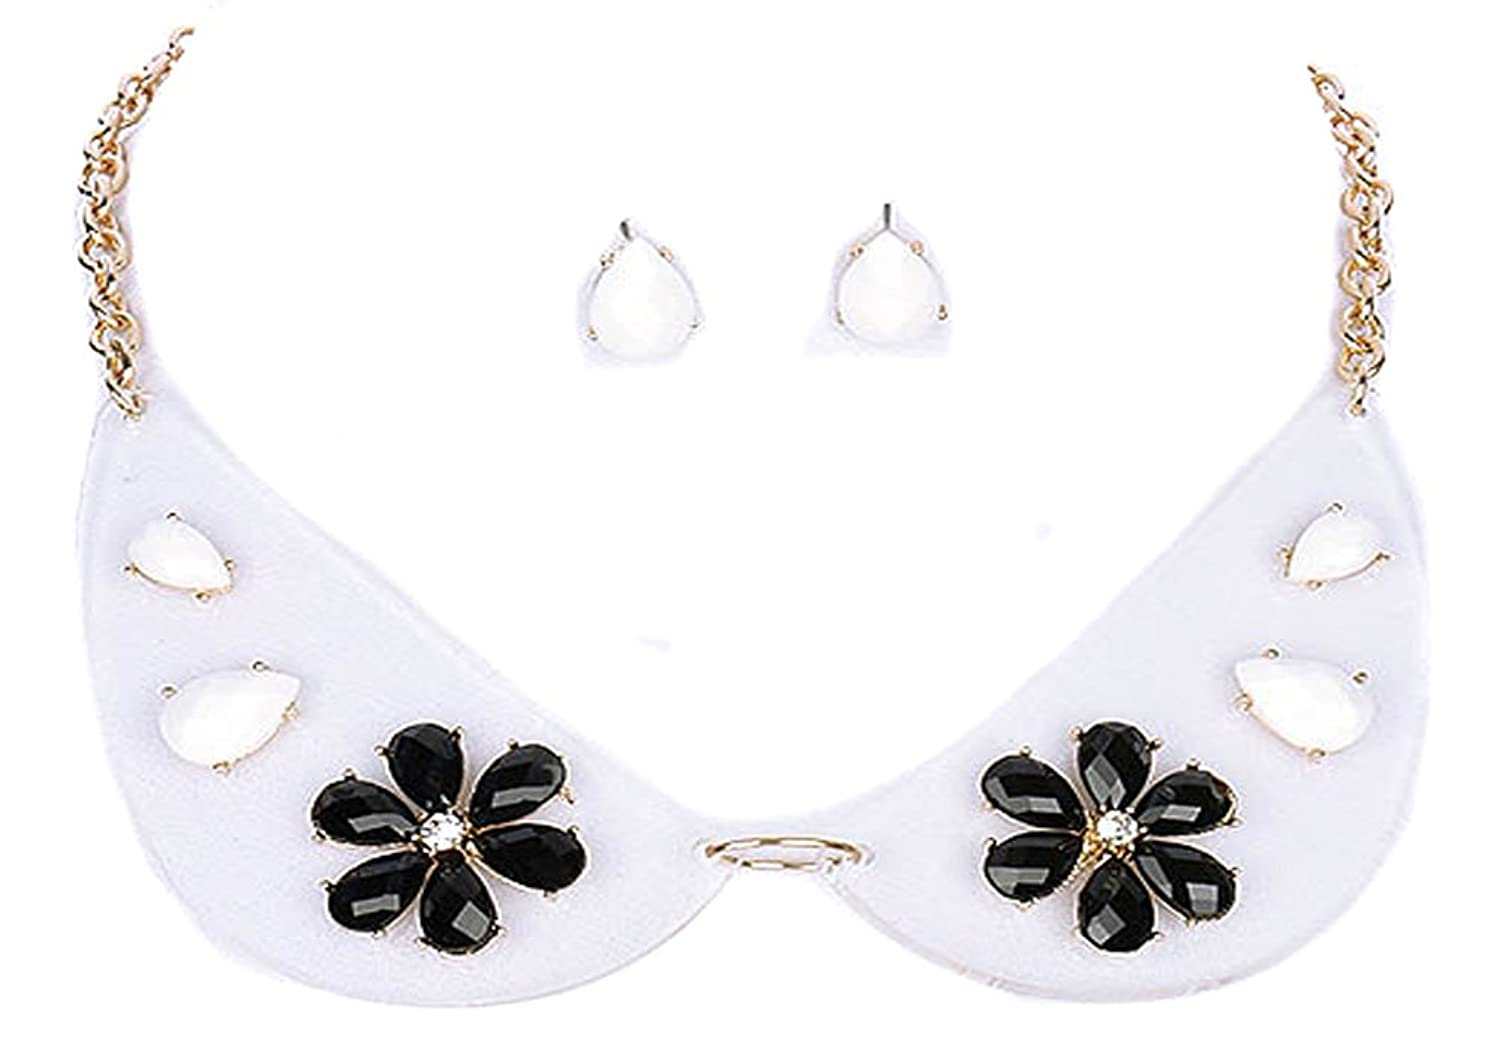 Fashion Jewelry ~ Black White Flowers Lucite Stones Clear Collar Necklace and Earrings Set